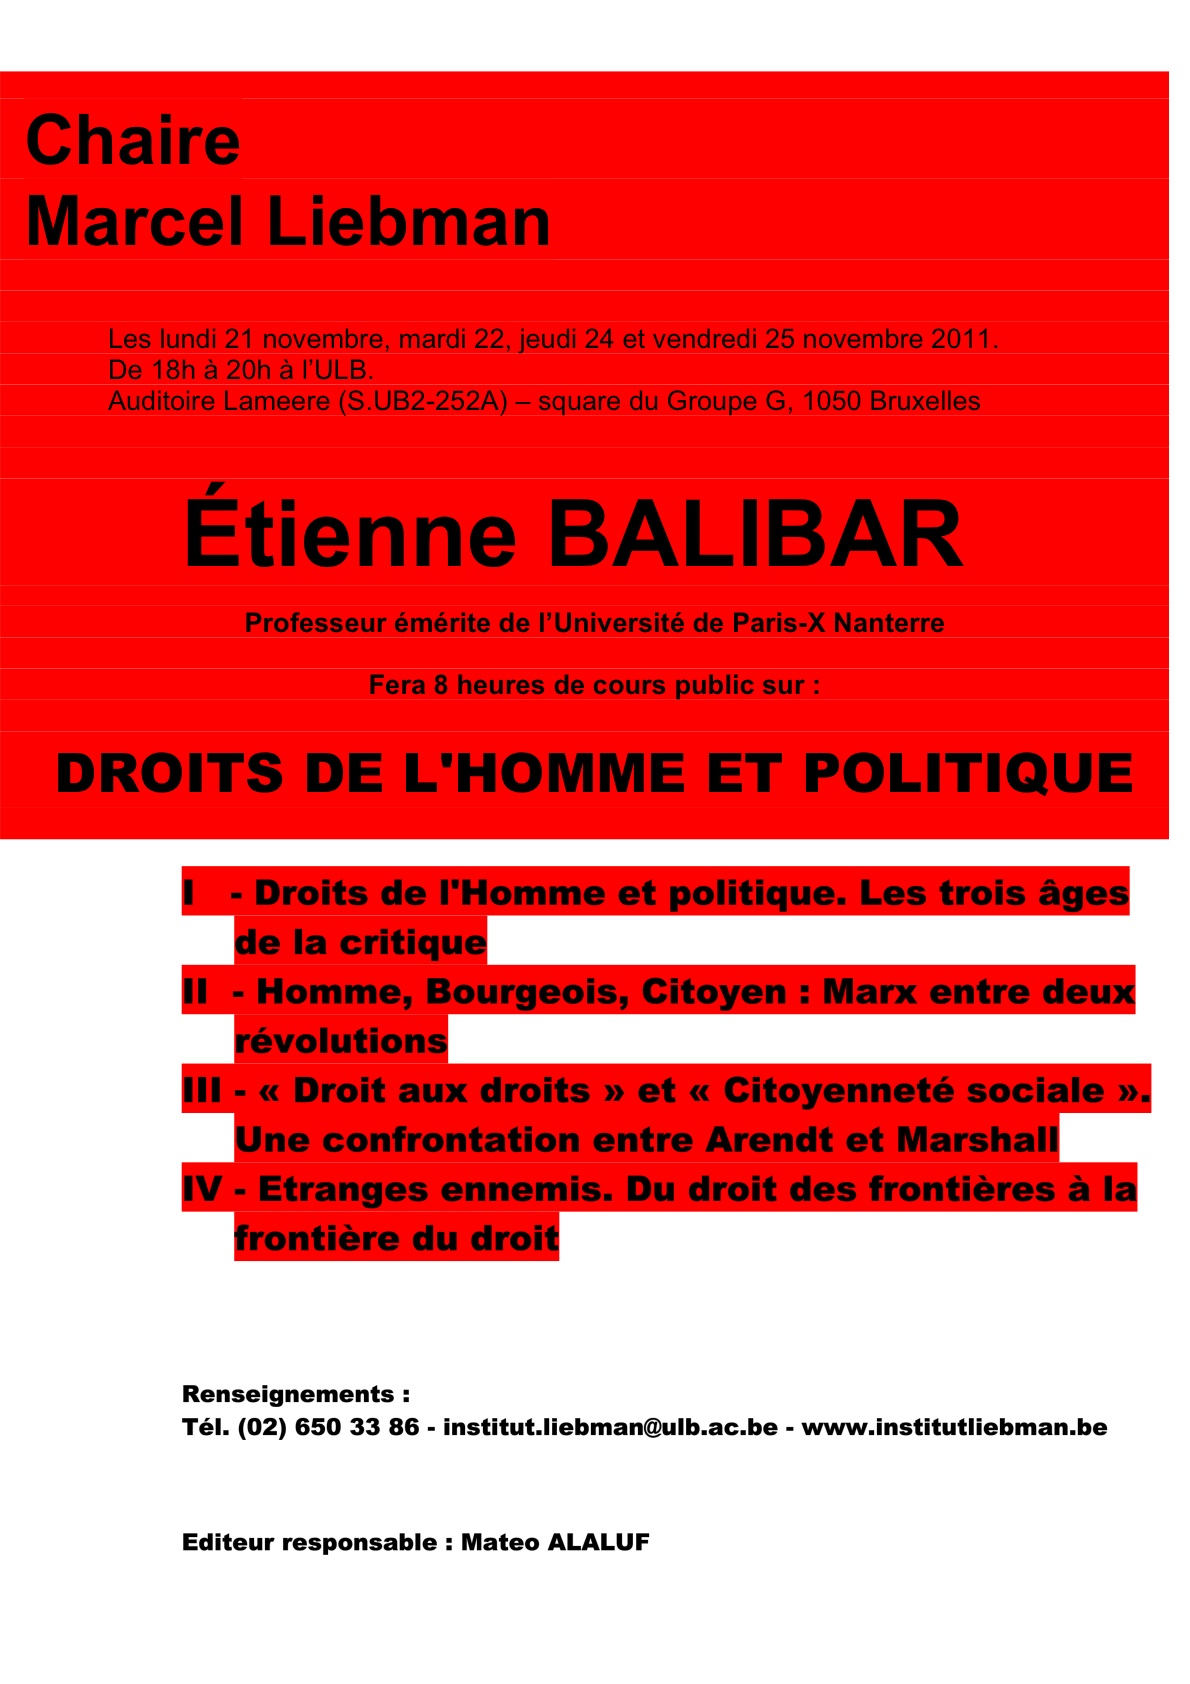 Chaire_Balibar_version_Travail.jpg